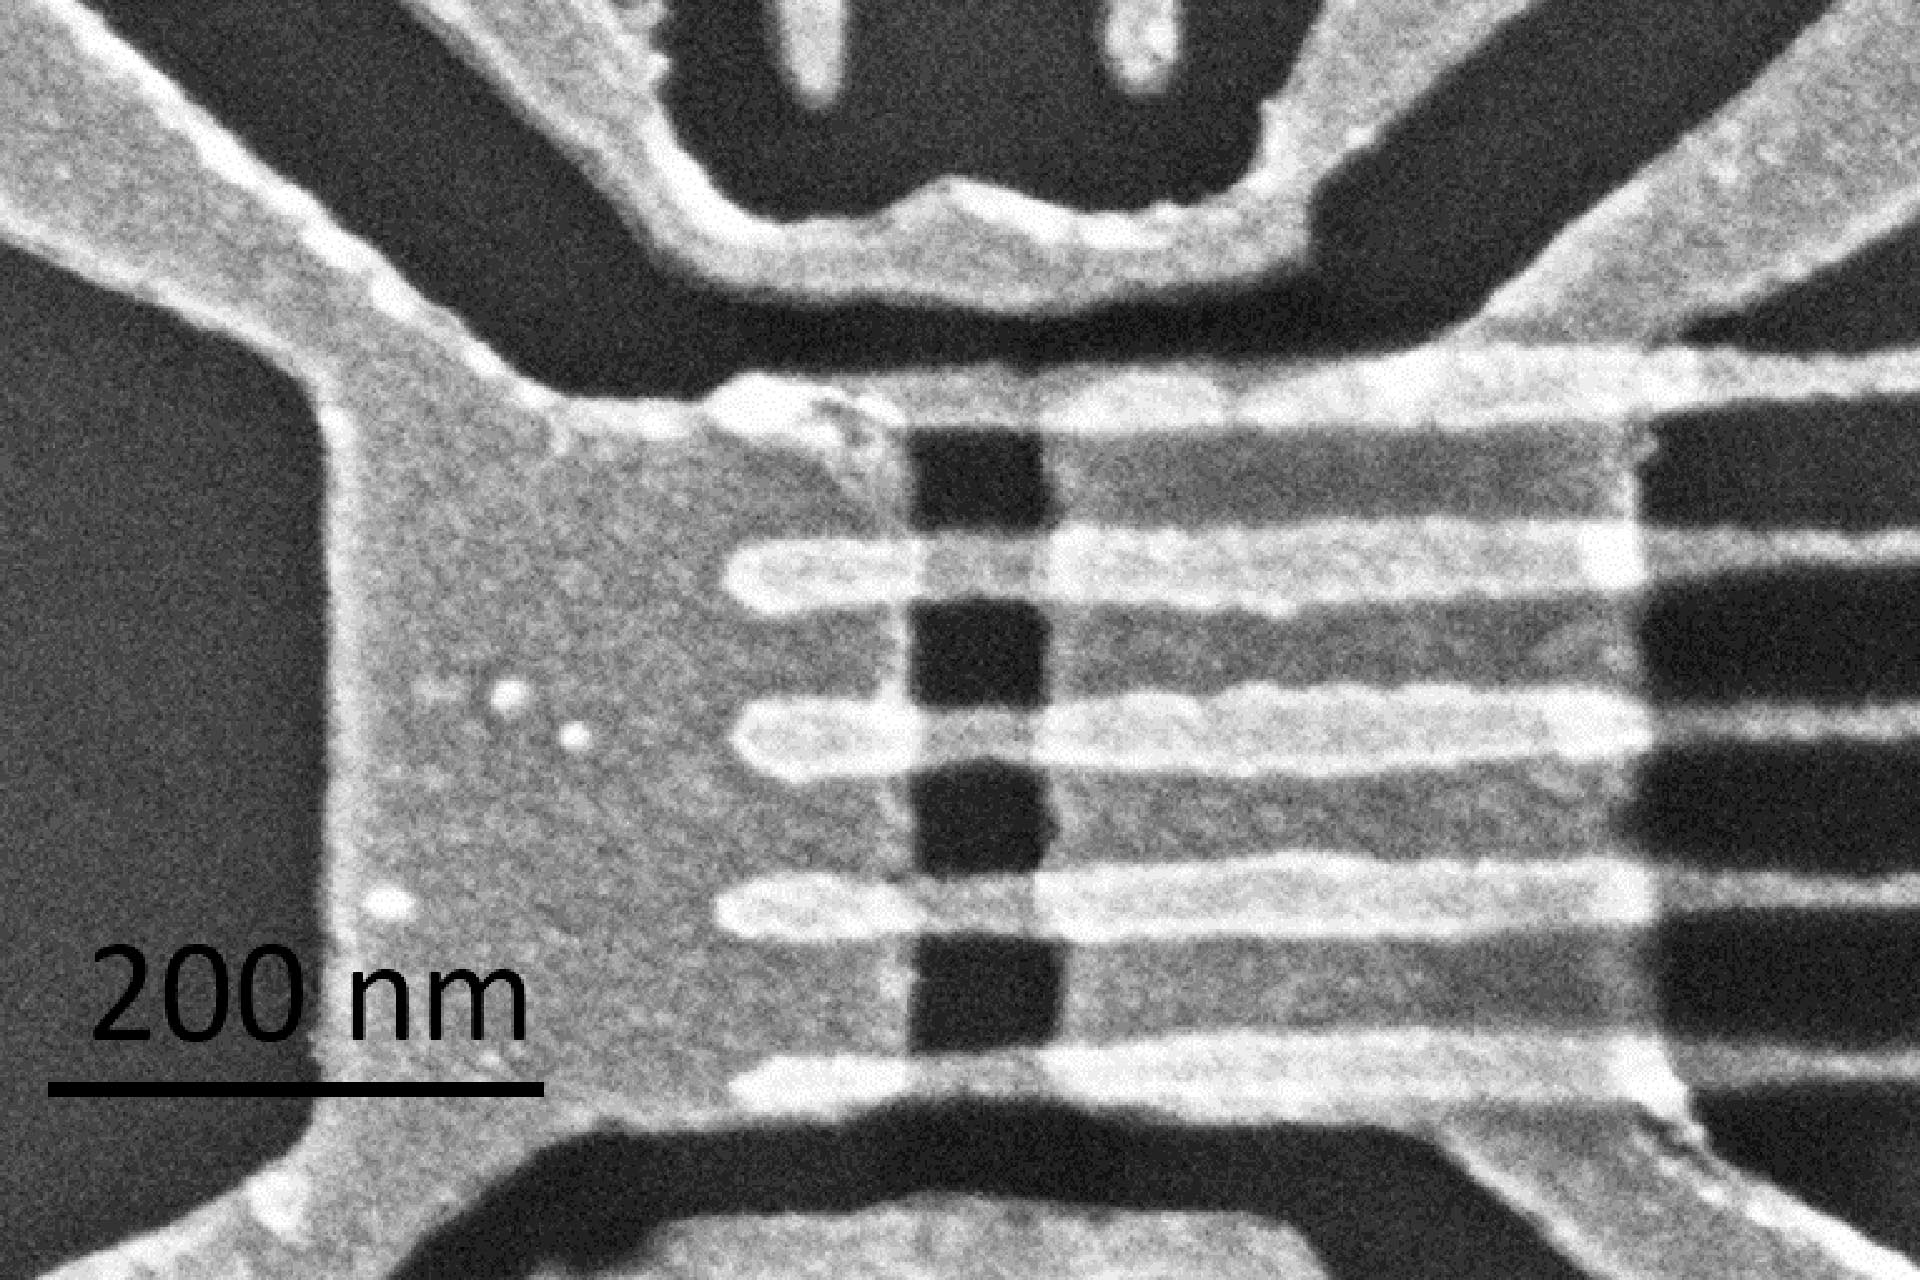 Quantum bus in silicon with an array of gate electrodes atop metal leads fabricated previously by electron beam lithography. (Courtesy of Heidelberg Instruments Nano & Dr. Lars Schreiber, RWTH Aachen, Germany)